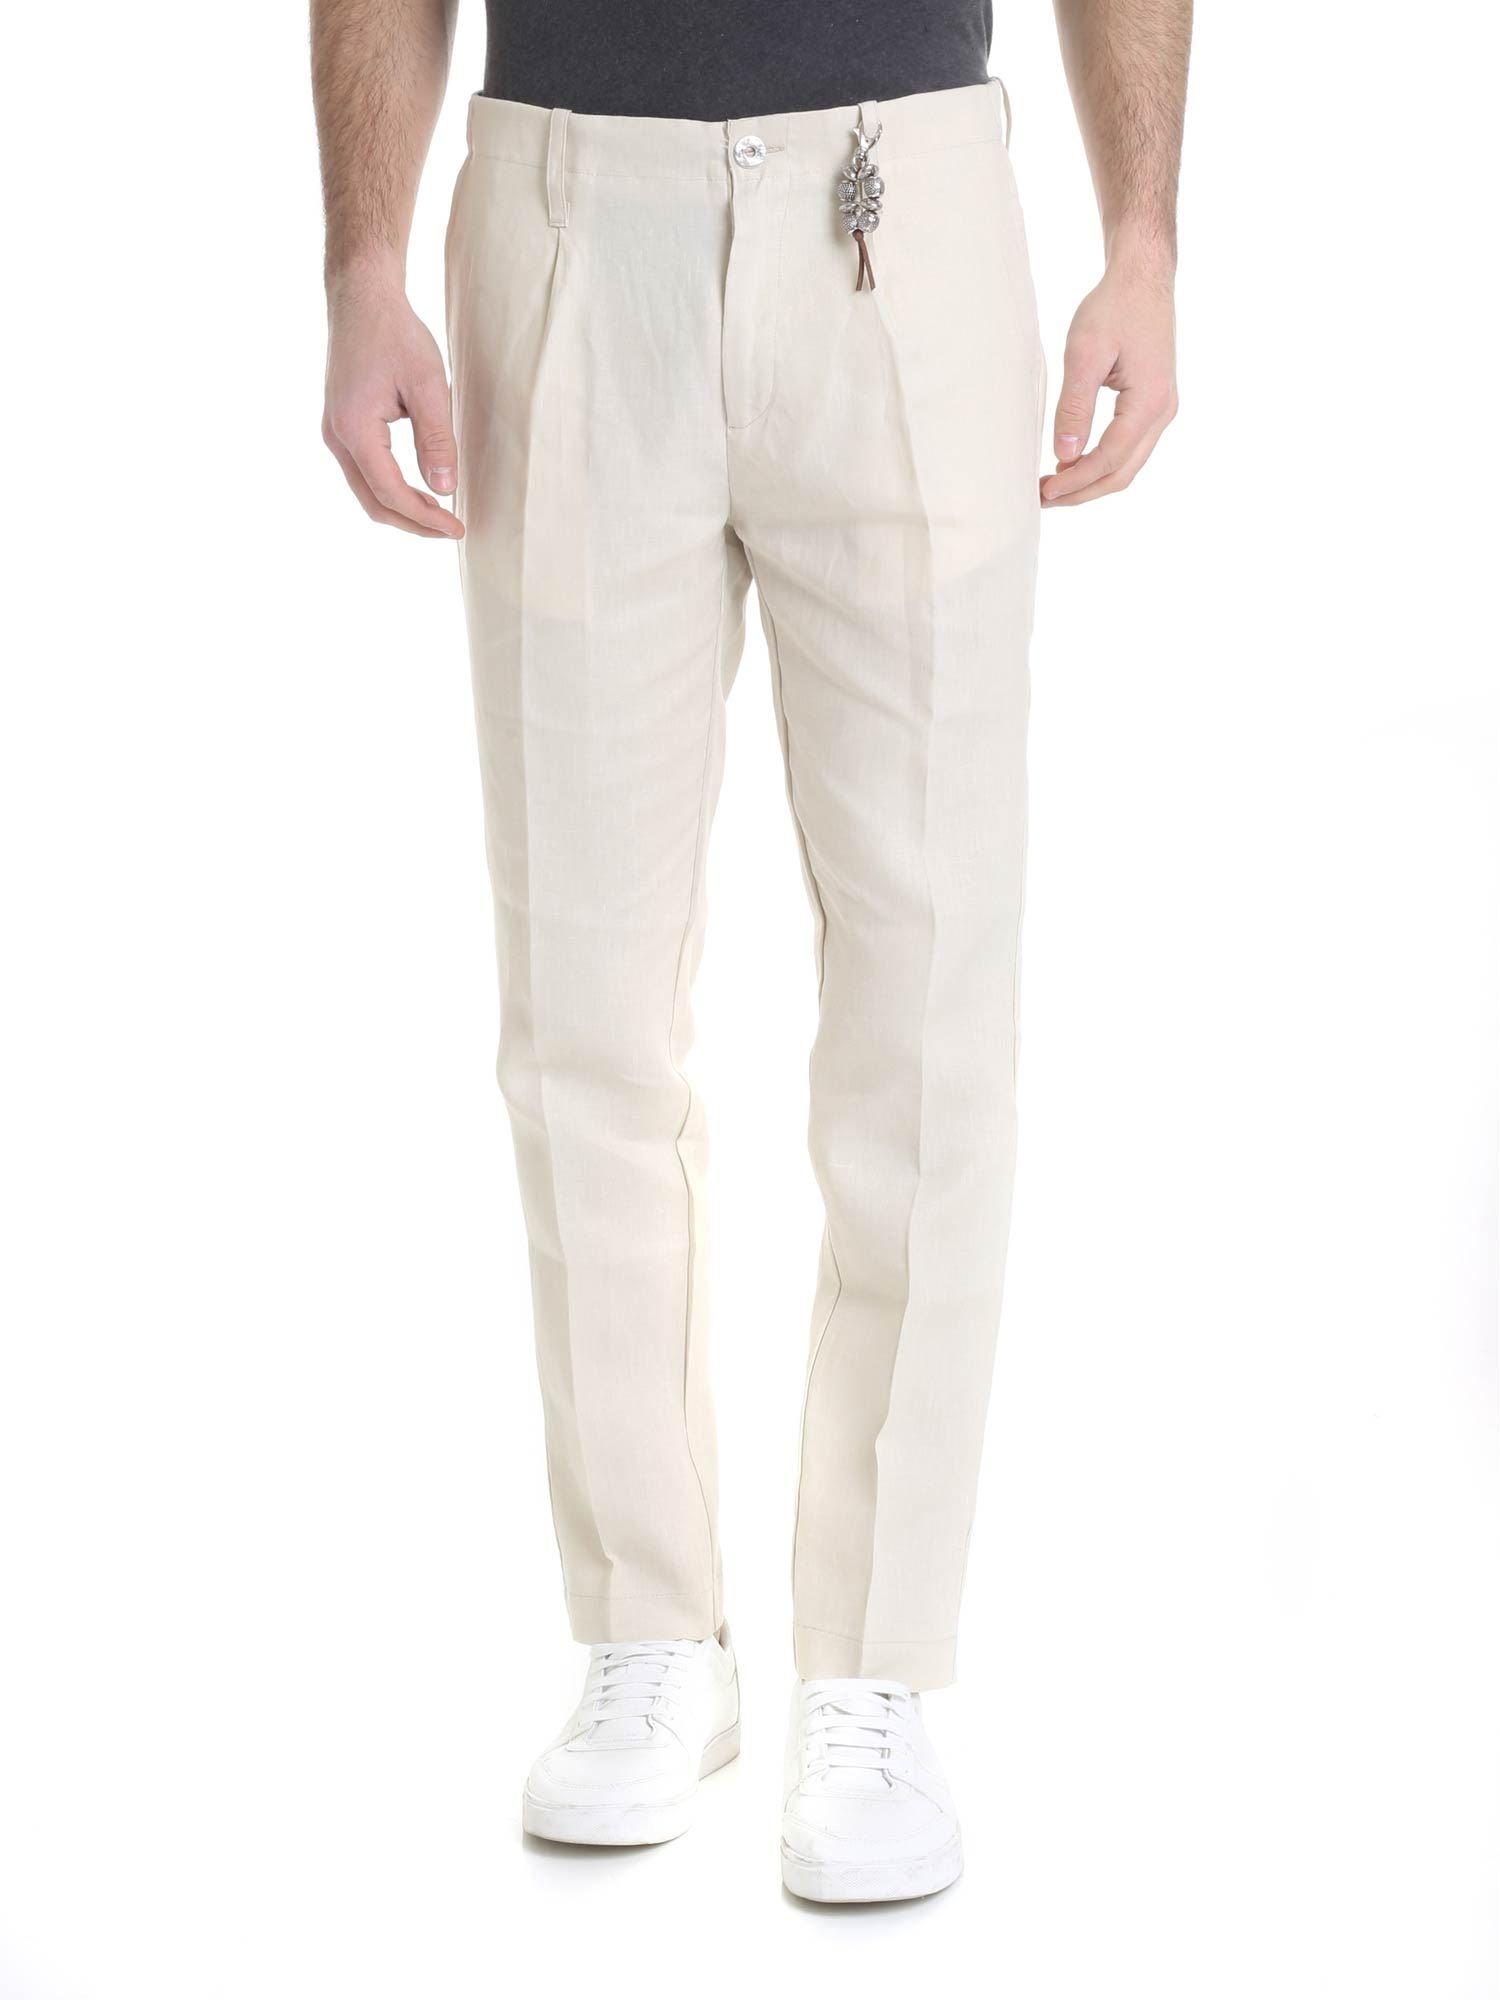 Image of Pantalone in lino beige con 1 pince R92 L-BE